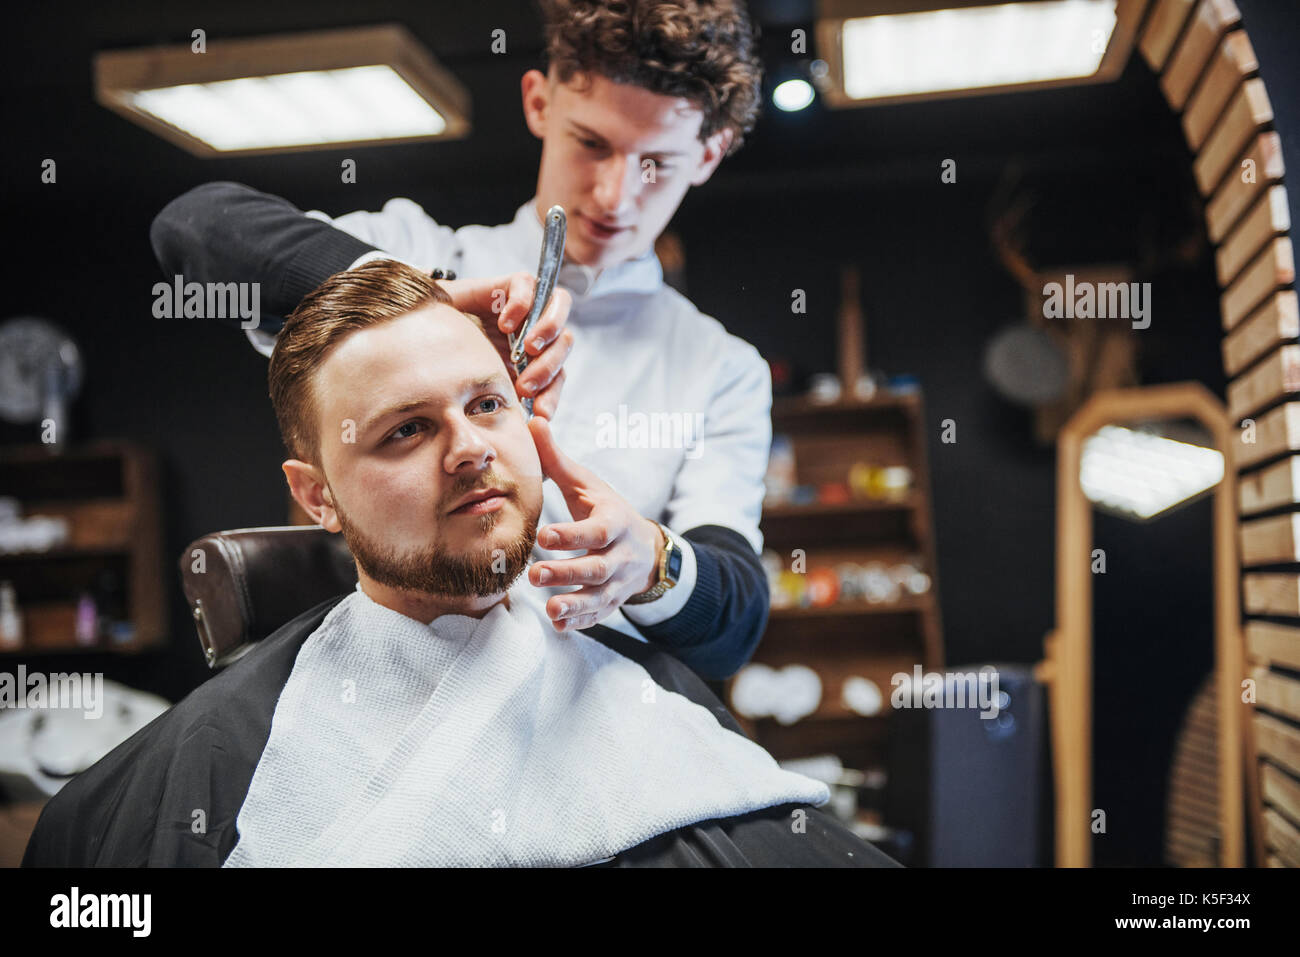 Men's hairstyling and haircutting in a barber shop or hair salon. - Stock Image